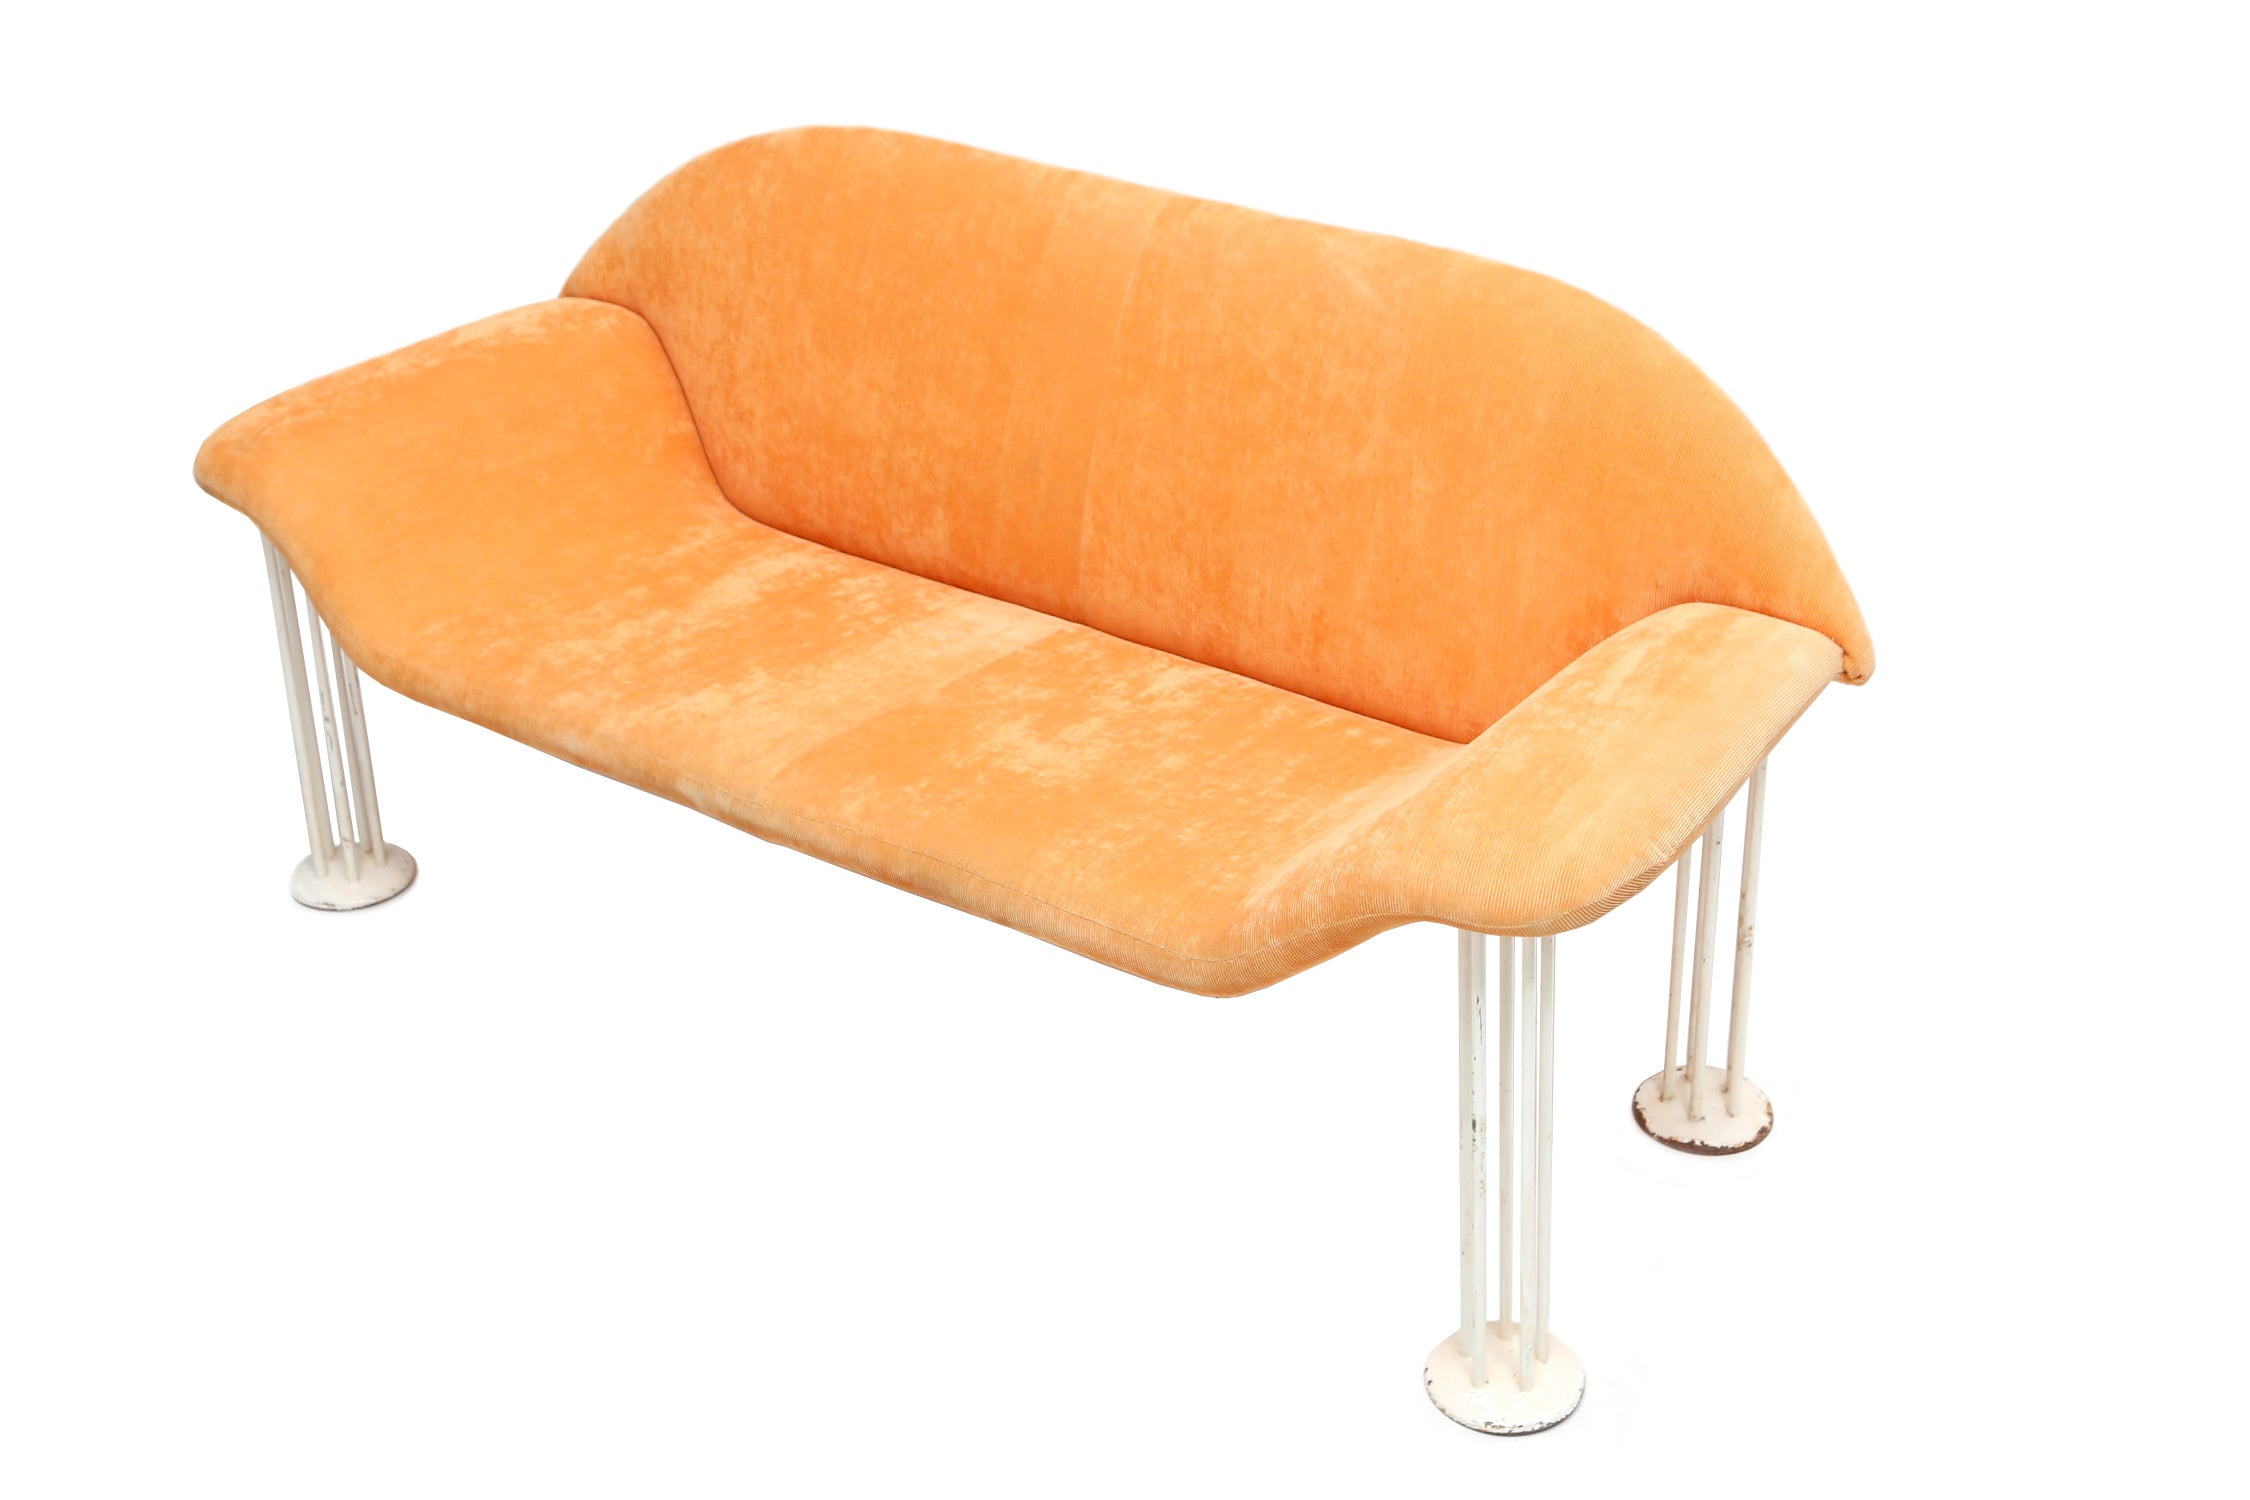 Interio Sofa Marilyn Mid Century Modern Vintage Memphis Style Italian Sofa For Sale At